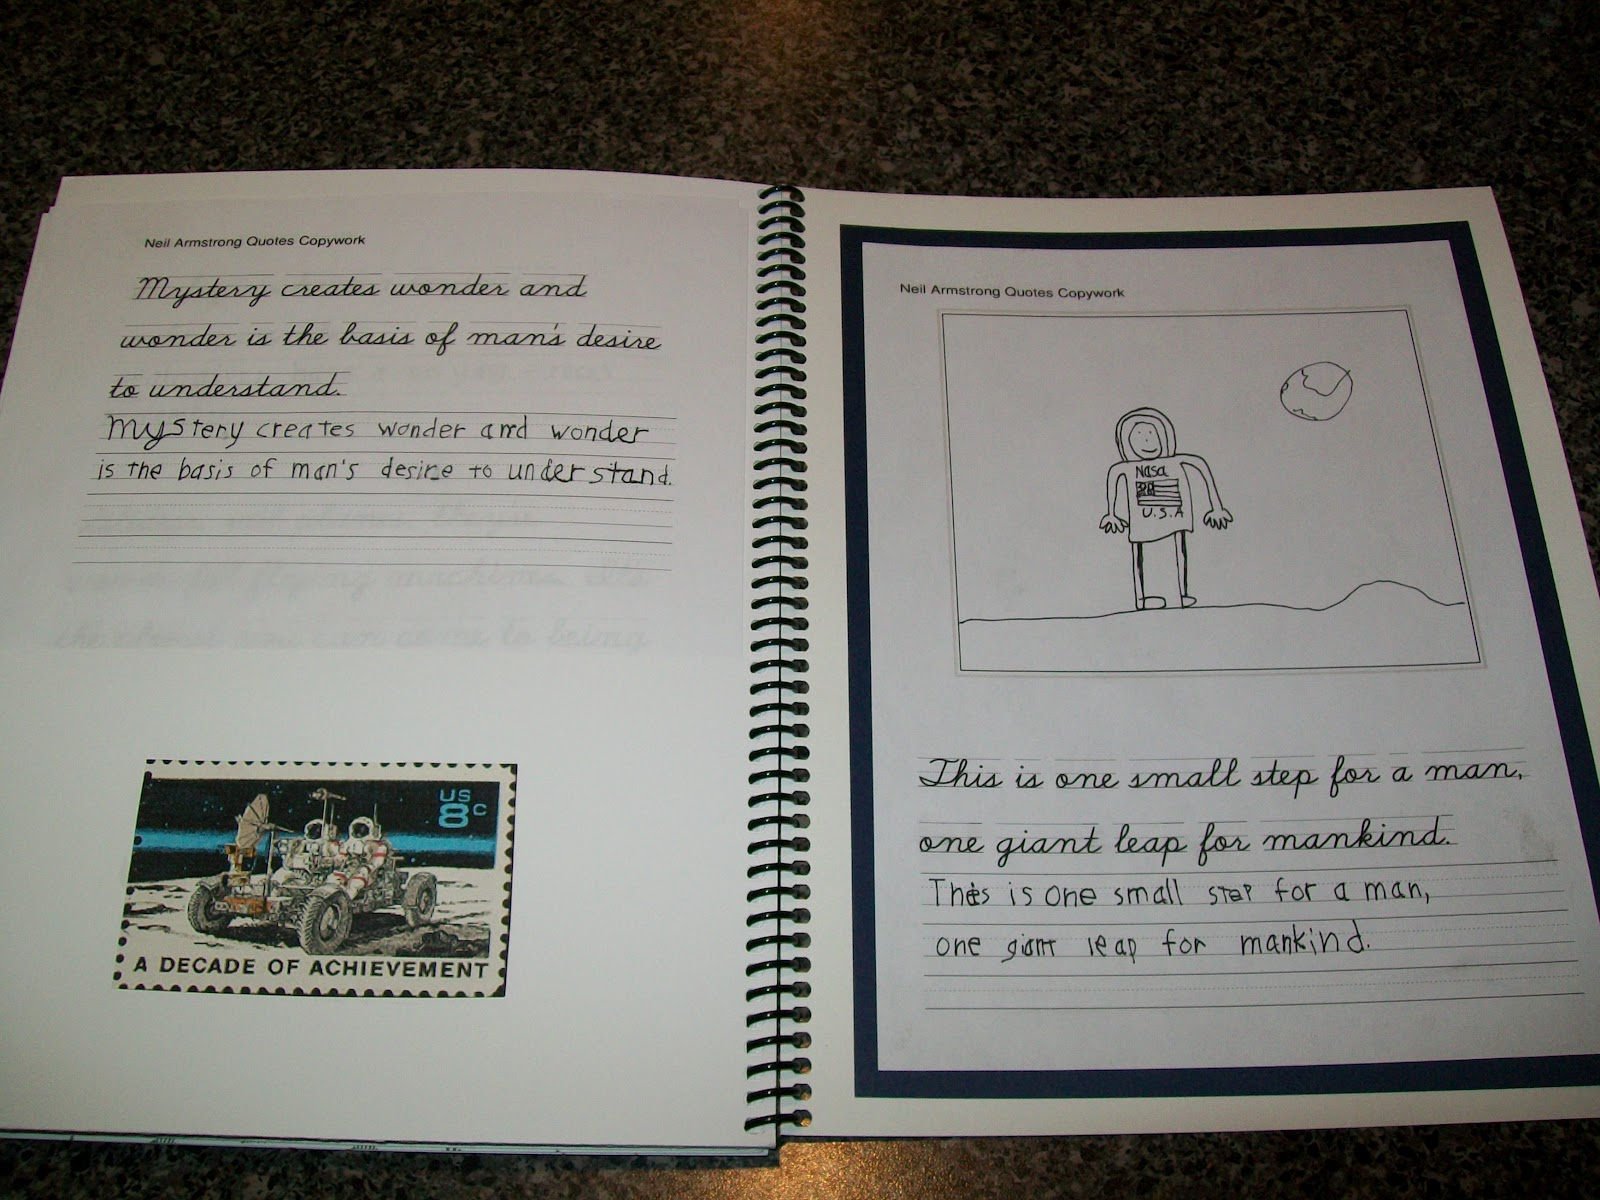 neil armstrong lapbook - photo #11